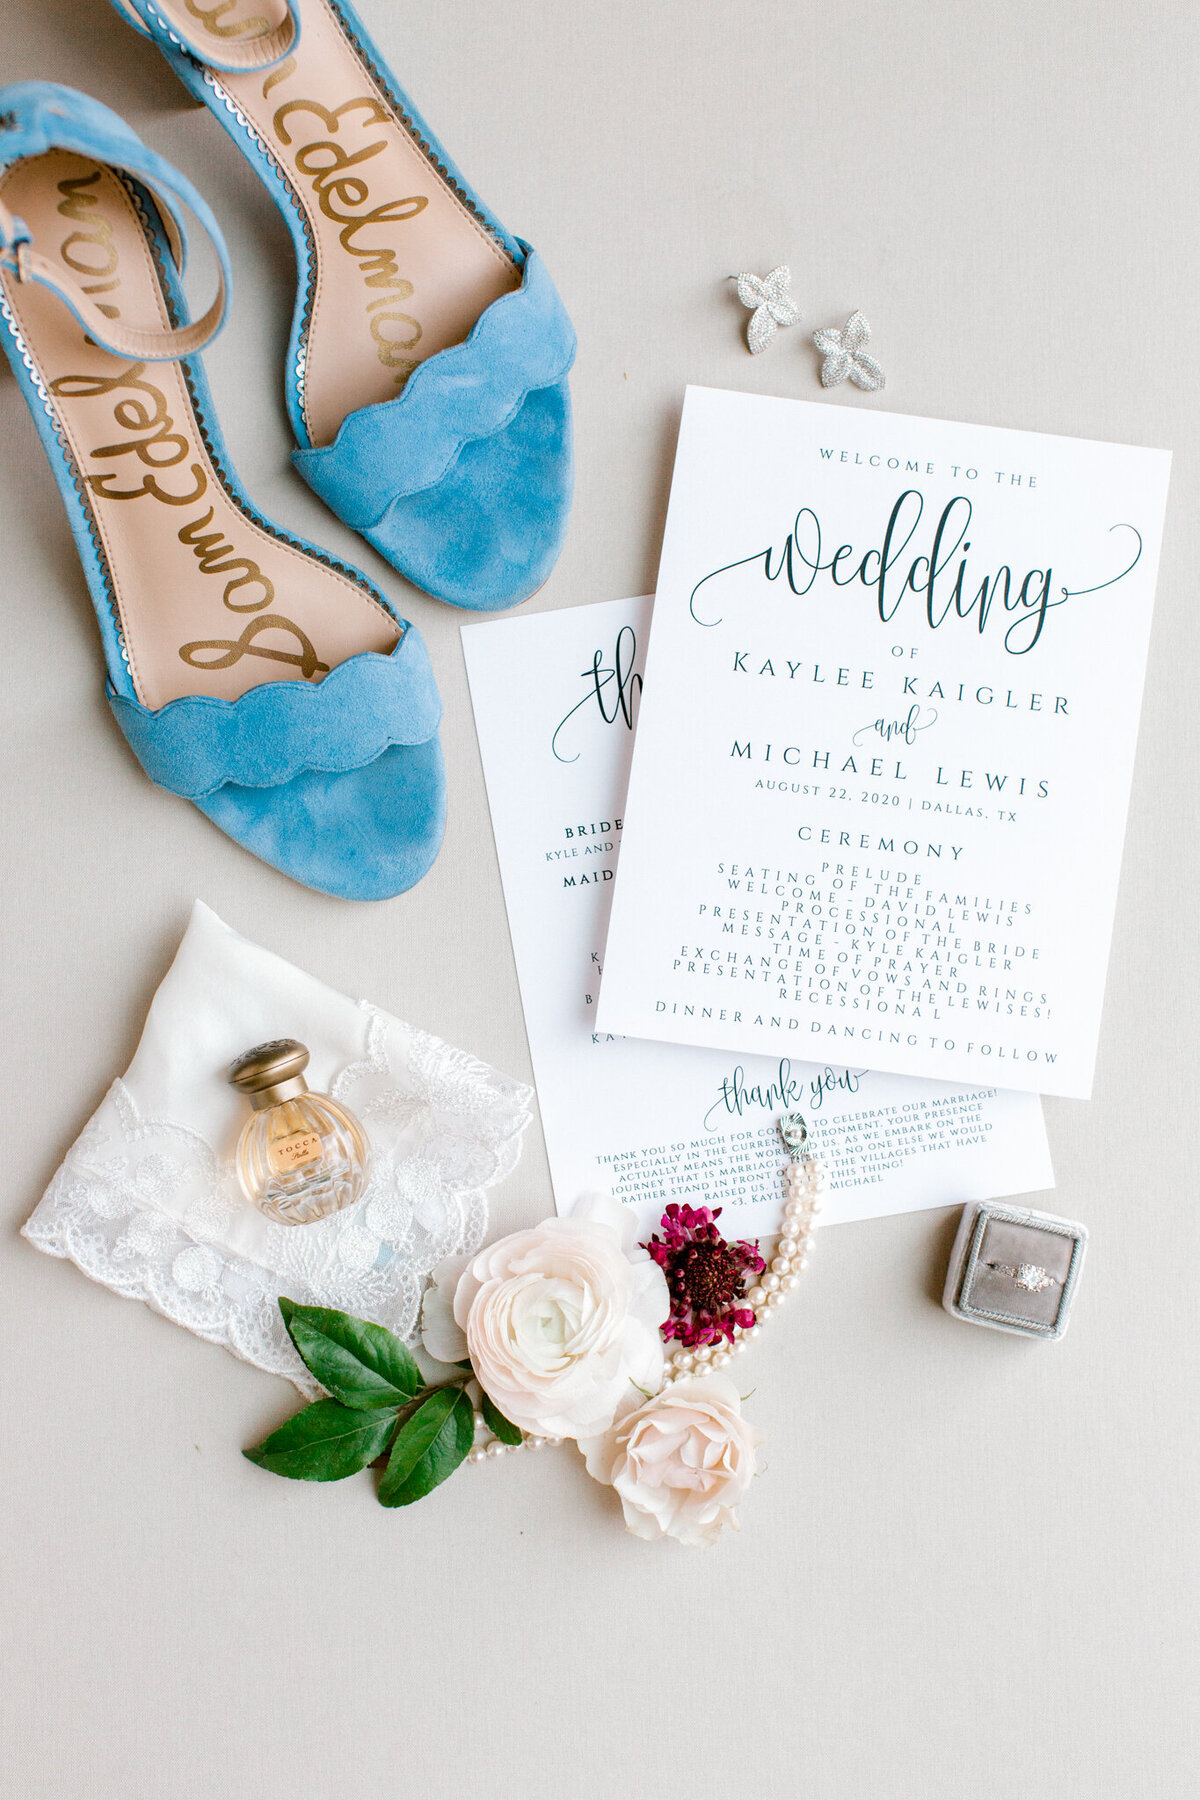 Kaylee & Michael's Wedding at Watermark Community Church | Dallas Wedding Photographer | Sami Kathryn Photography-4